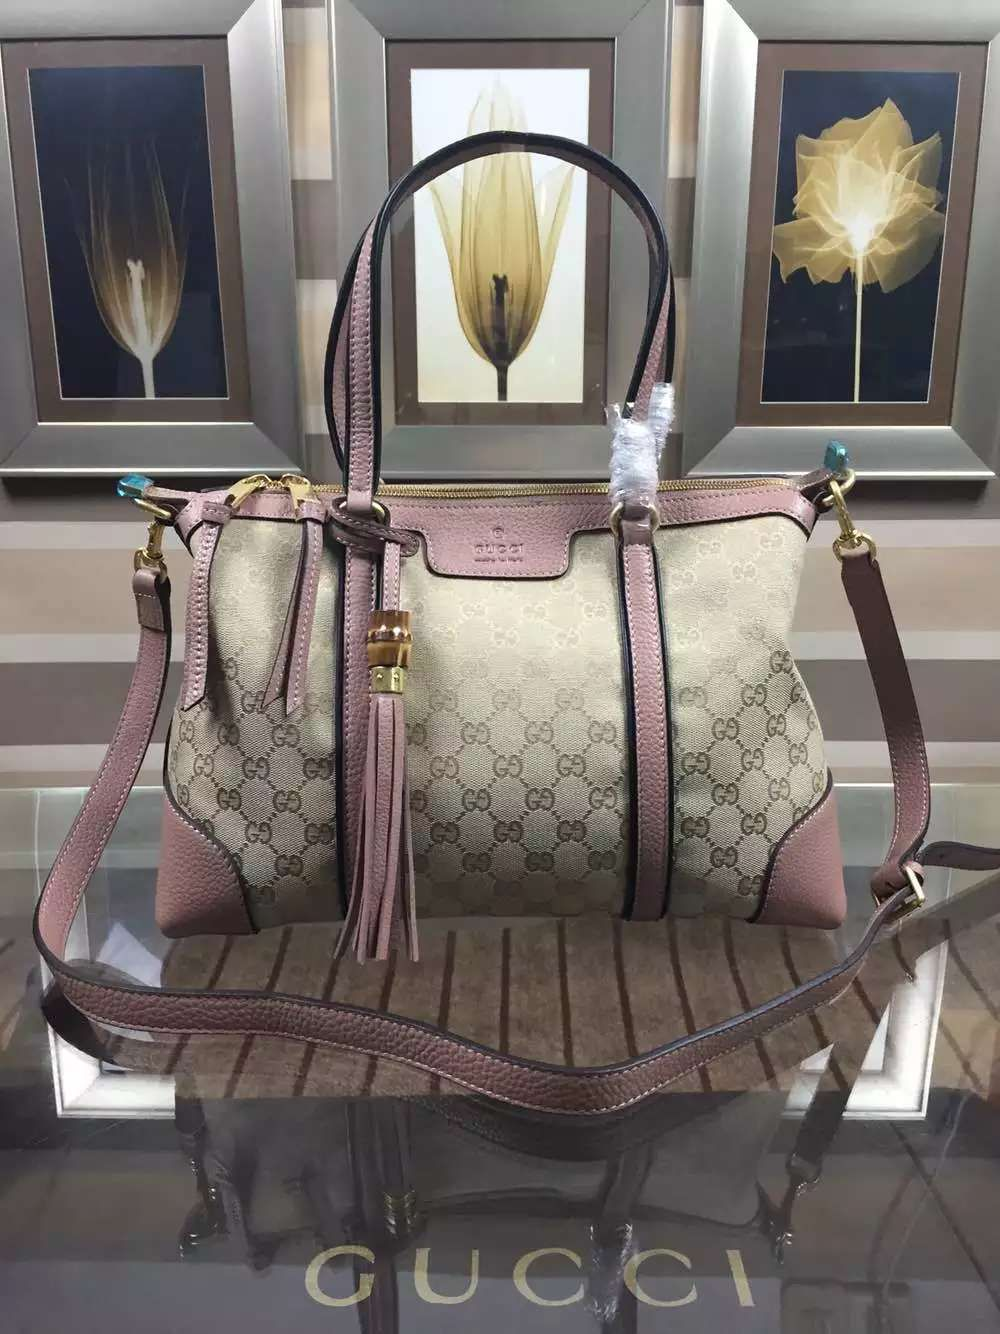 79f0772faaf9 gucciBag  gucci  shopping ID   20926(FORSALE a yybags.com)